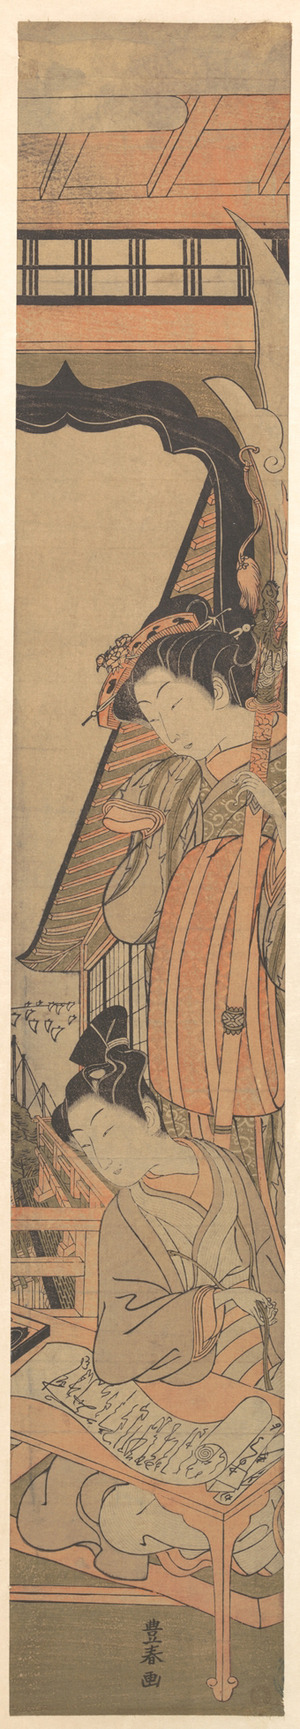 Utagawa Toyoharu: A Beauty Looking Down upon a Young Man Reading a Love Letter - Metropolitan Museum of Art